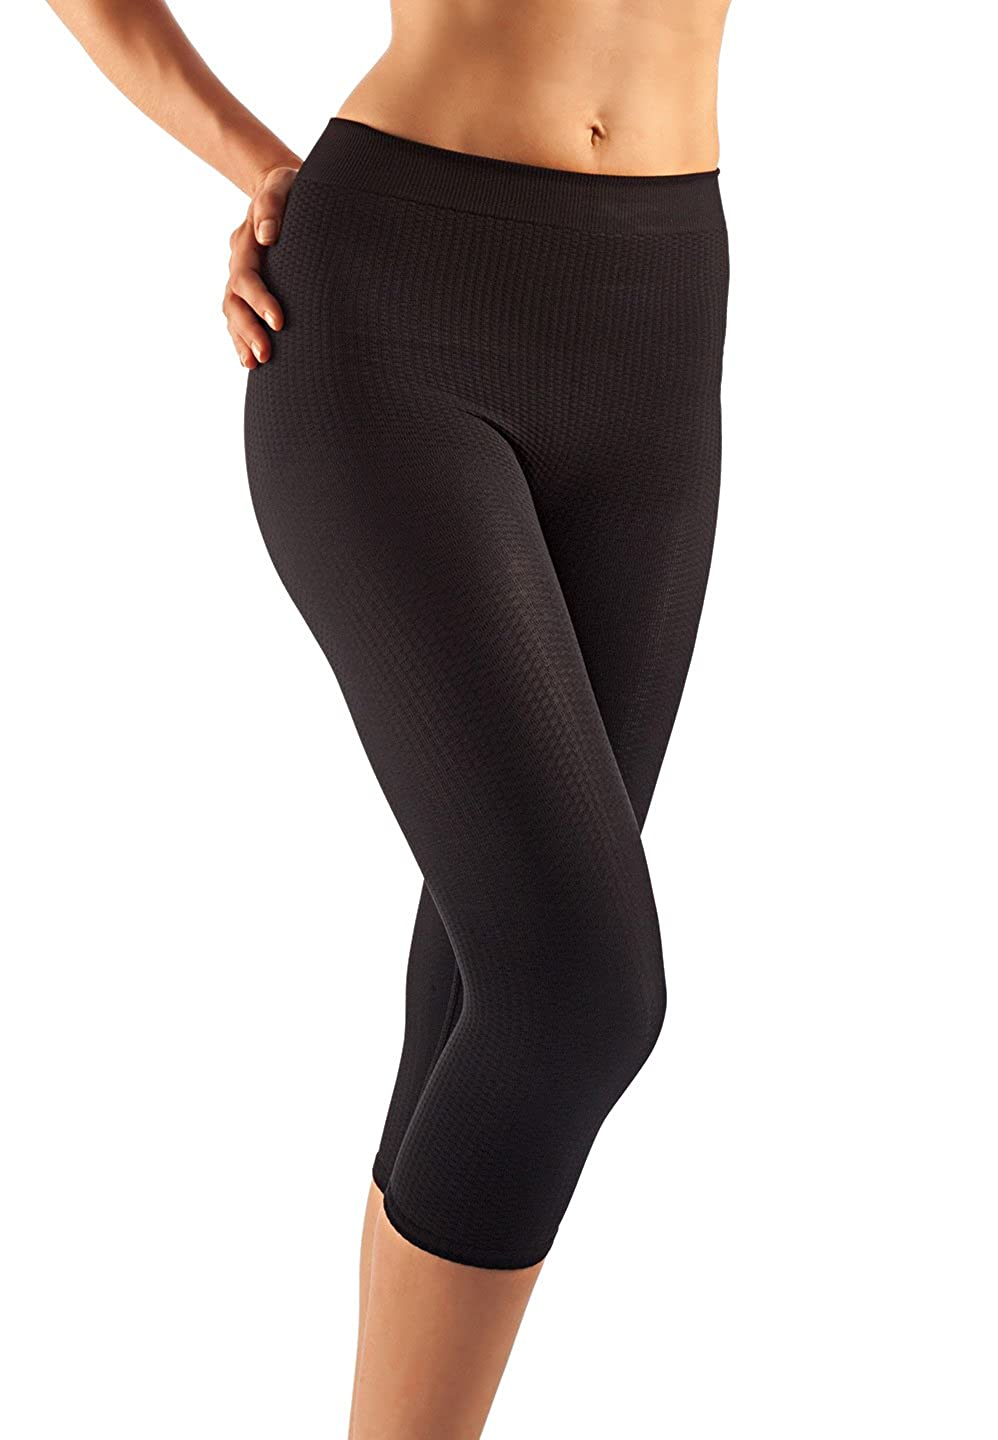 Farmacell 122 Women's Anti-Cellulite micromassage Capri Leggings Farmacell 122 (Black 122FCLFCSI/CONF_0500002